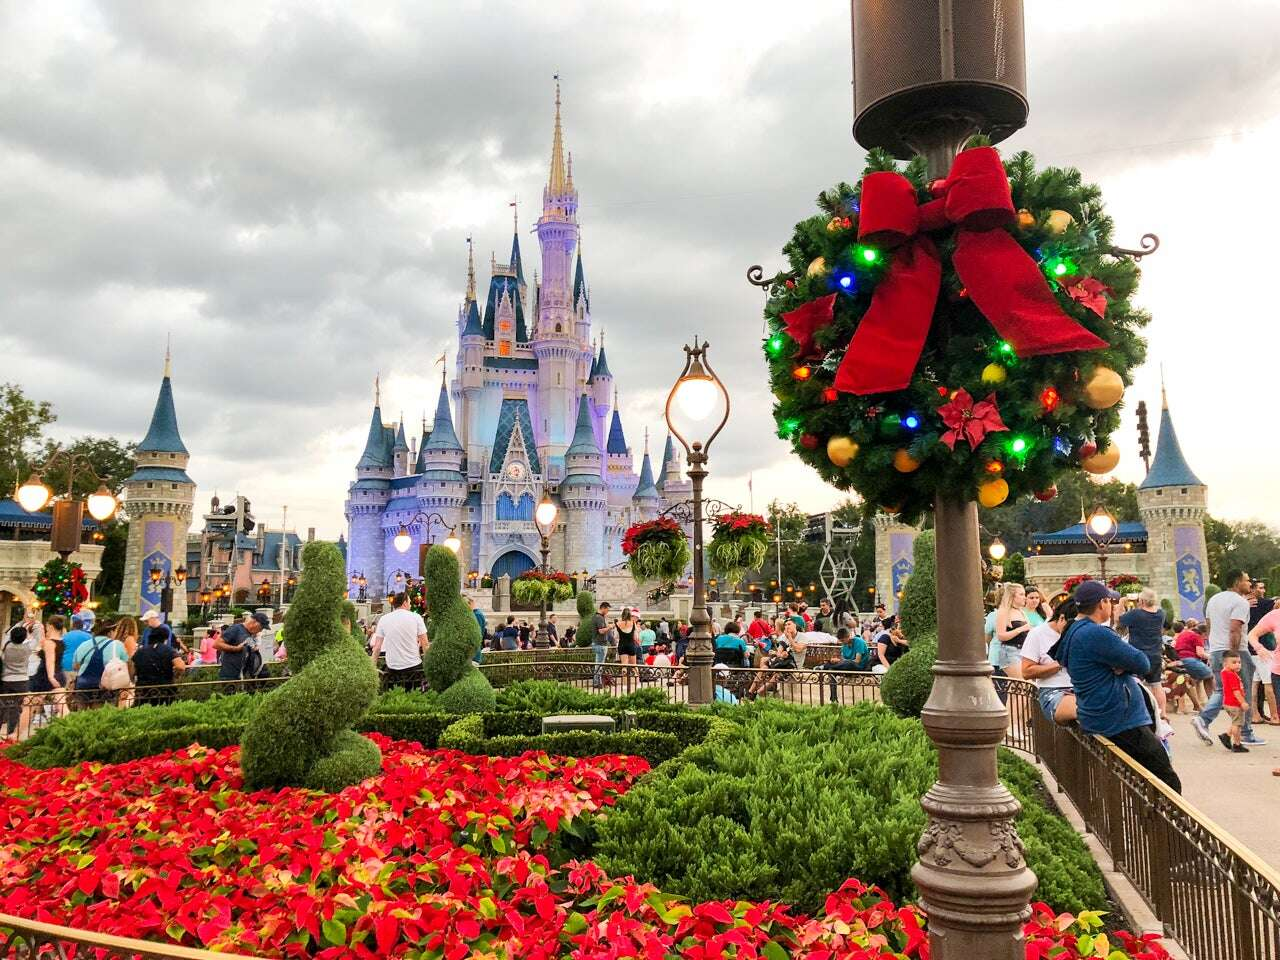 Disney World confirms increased capacity, parks are 77% booked for holiday season